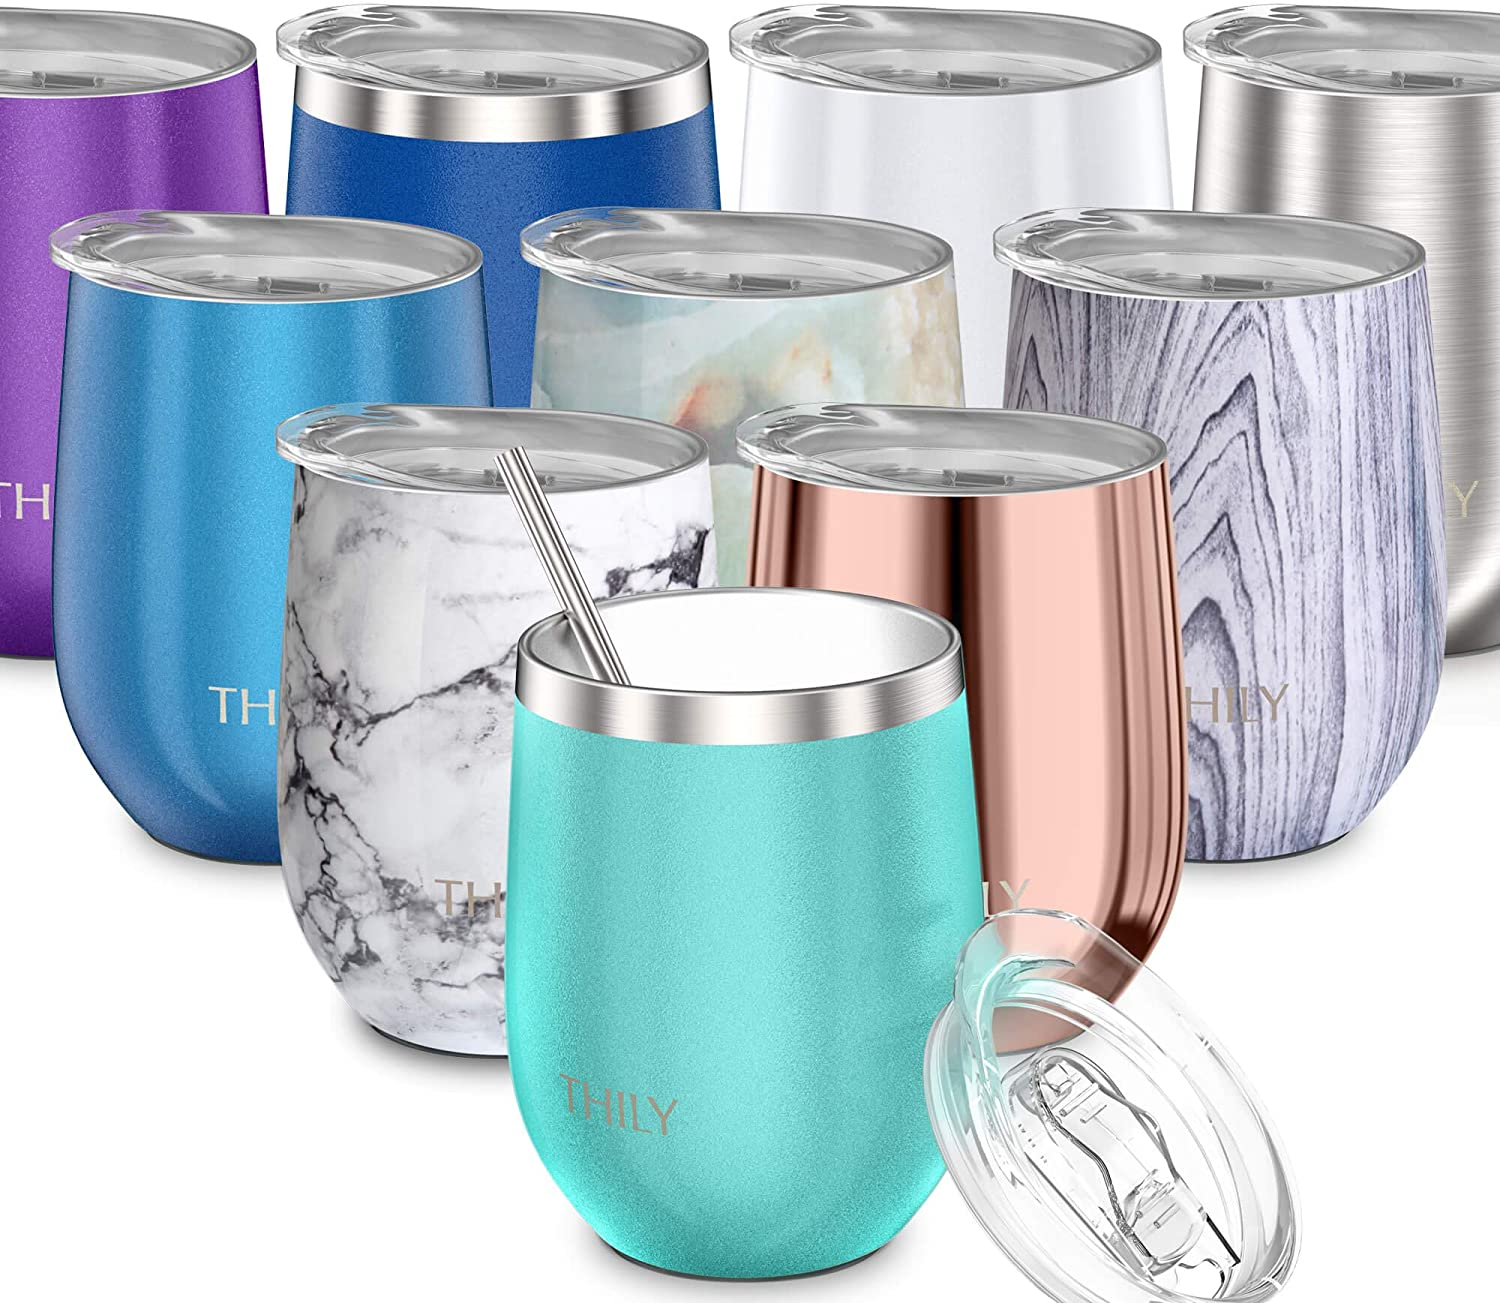 Stainless Steel Stemless Wine Glass - THILY T1 Triple Vacuum Insulated Travel Wine Tumbler Cup with Lid and Reusable Straw, 12 oz, Keep Drinks Cold or Hot, Teal